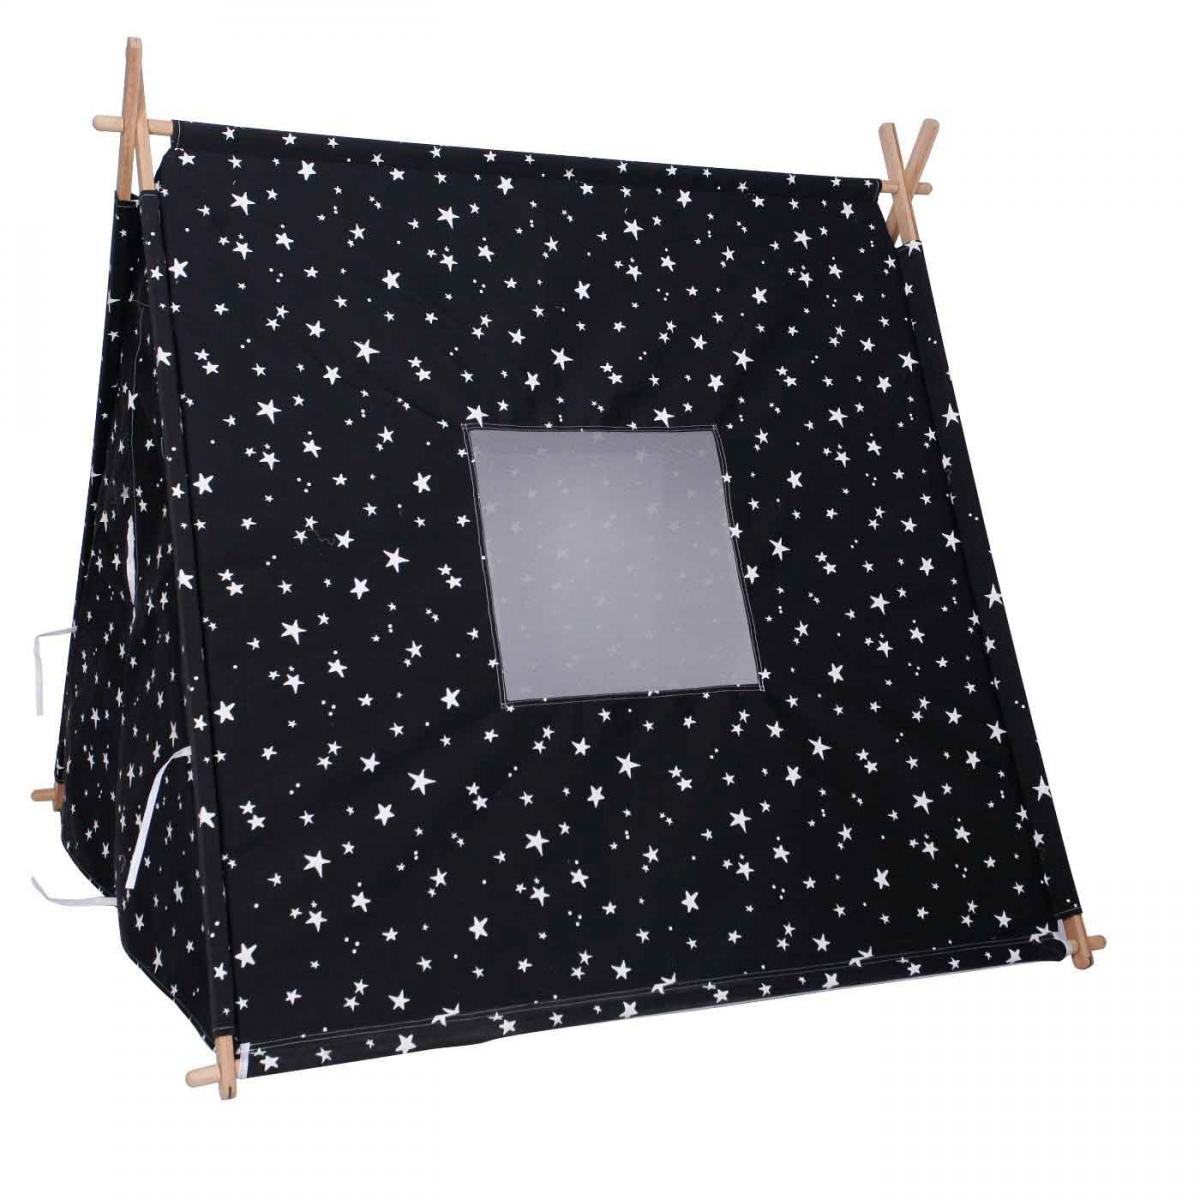 Pillowfort Target Frame Tent Glow in the dark